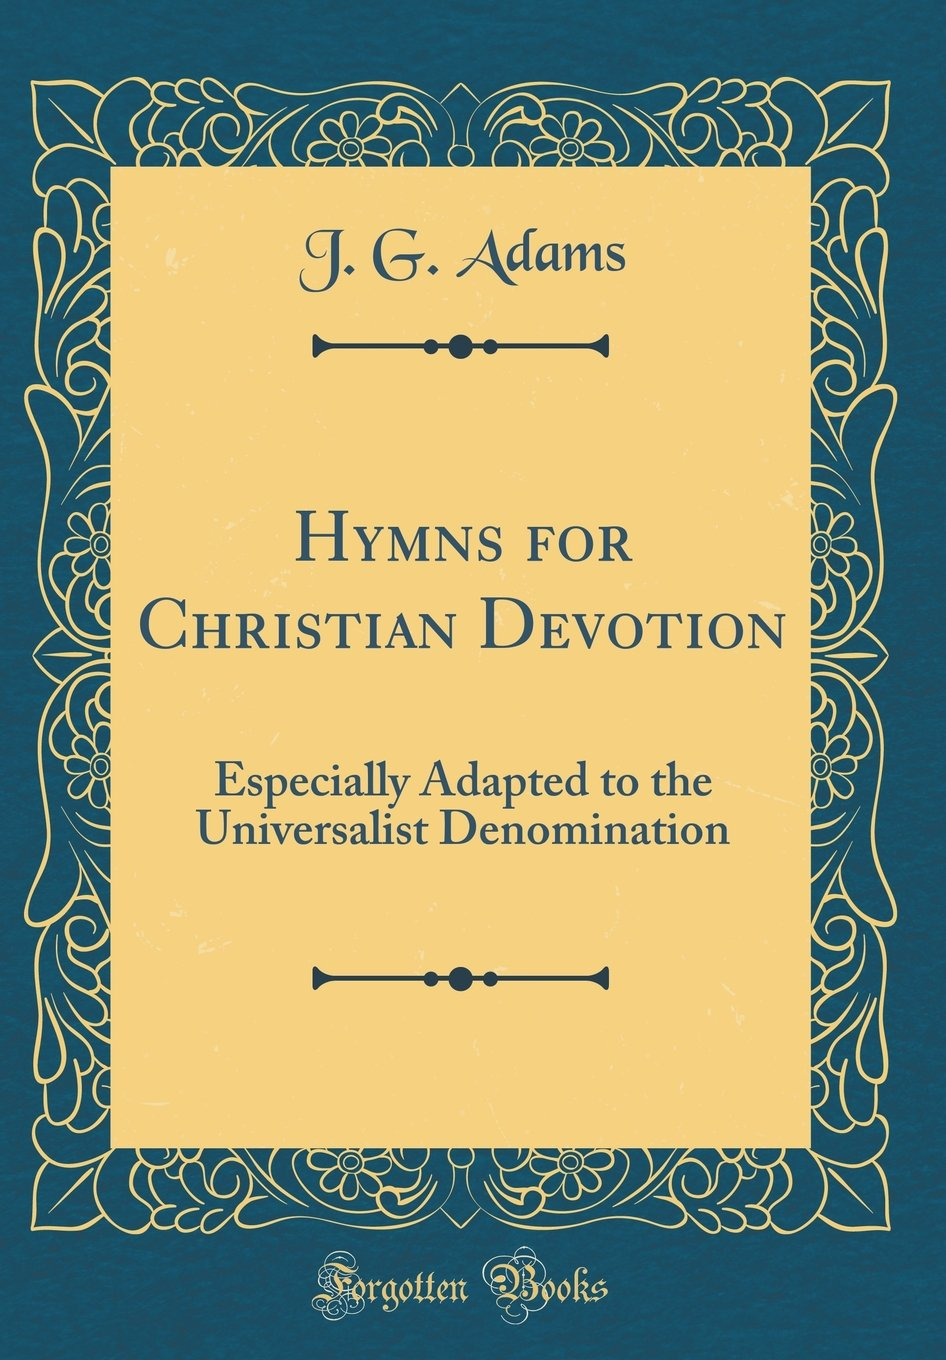 Hymns for Christian Devotion Especially Adapted to the Universalist Denomination